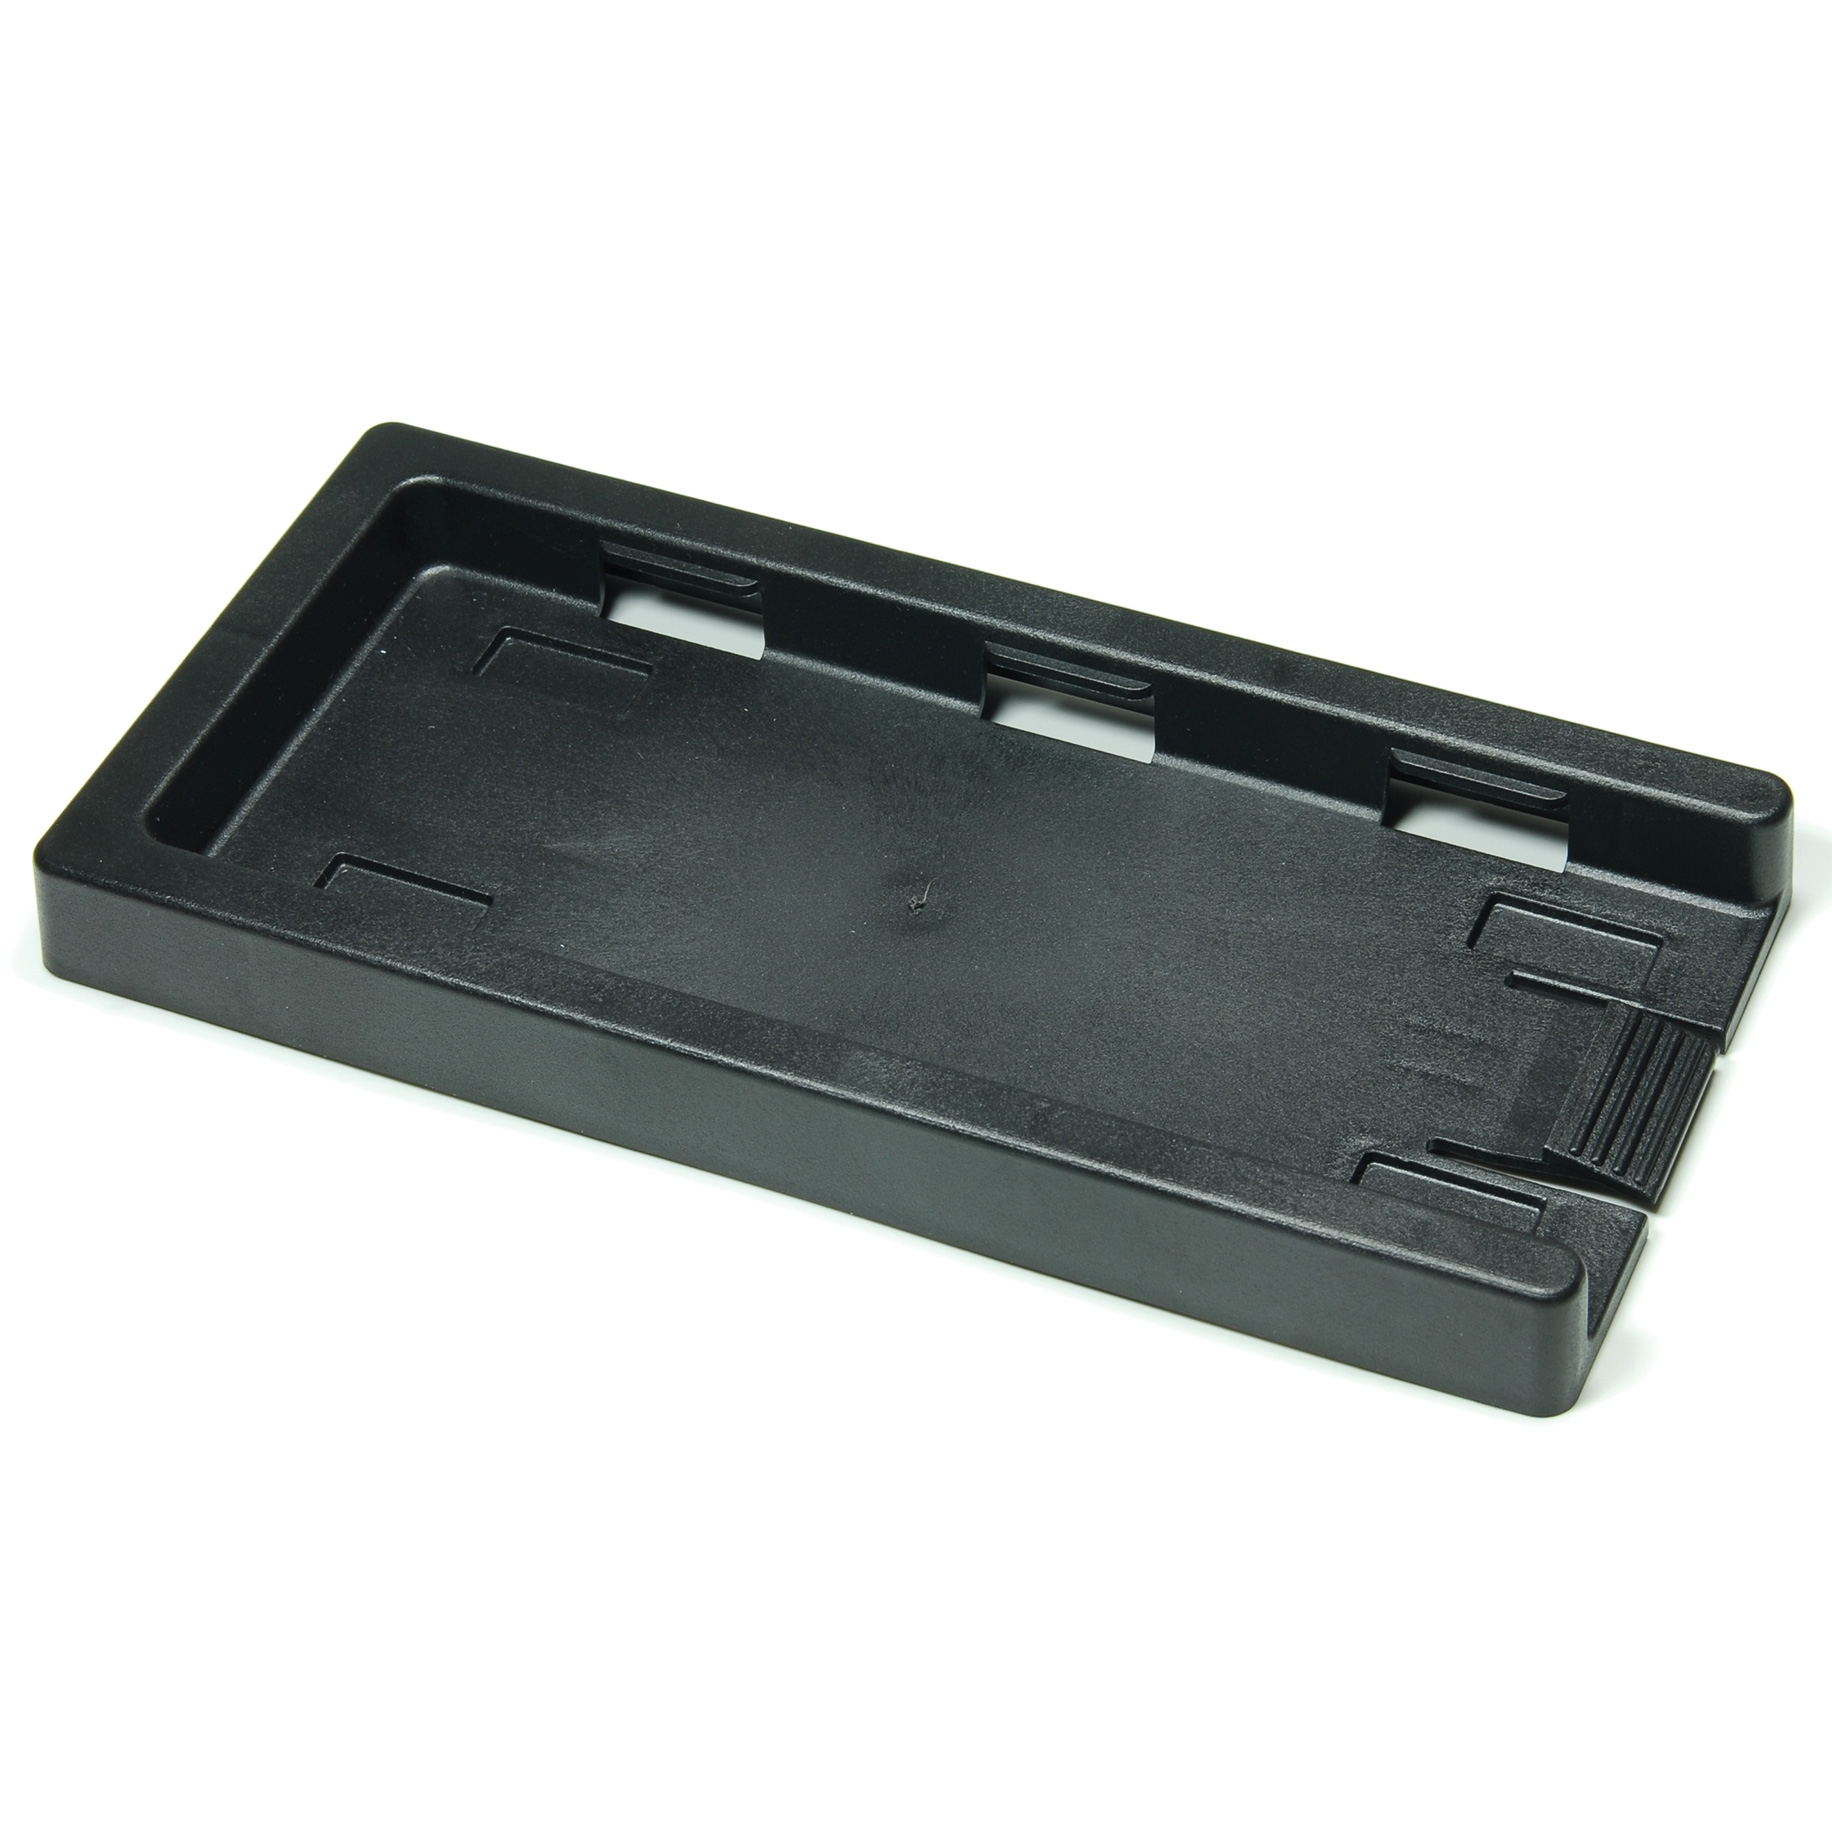 inSafe Accessories Sharps Box Base